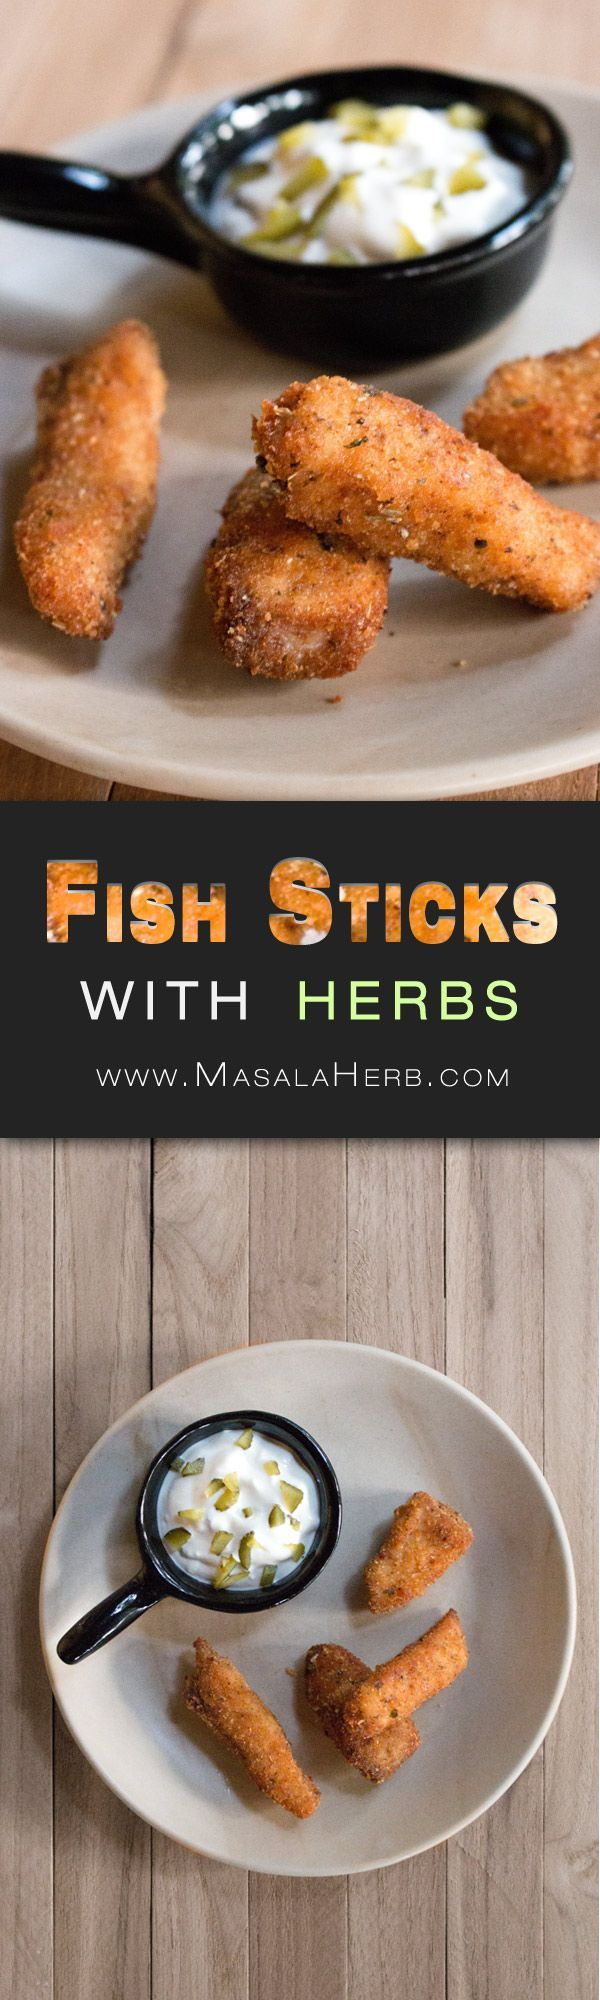 Fried Fish Sticks Recipe with fresh Fish Fillet and Herbs - How to make crispy fried fish fingers. Serve with Tartar sauce still hot. you ca even freeze a batch right after you coated the fish sticks. www.MasalaHerb.com